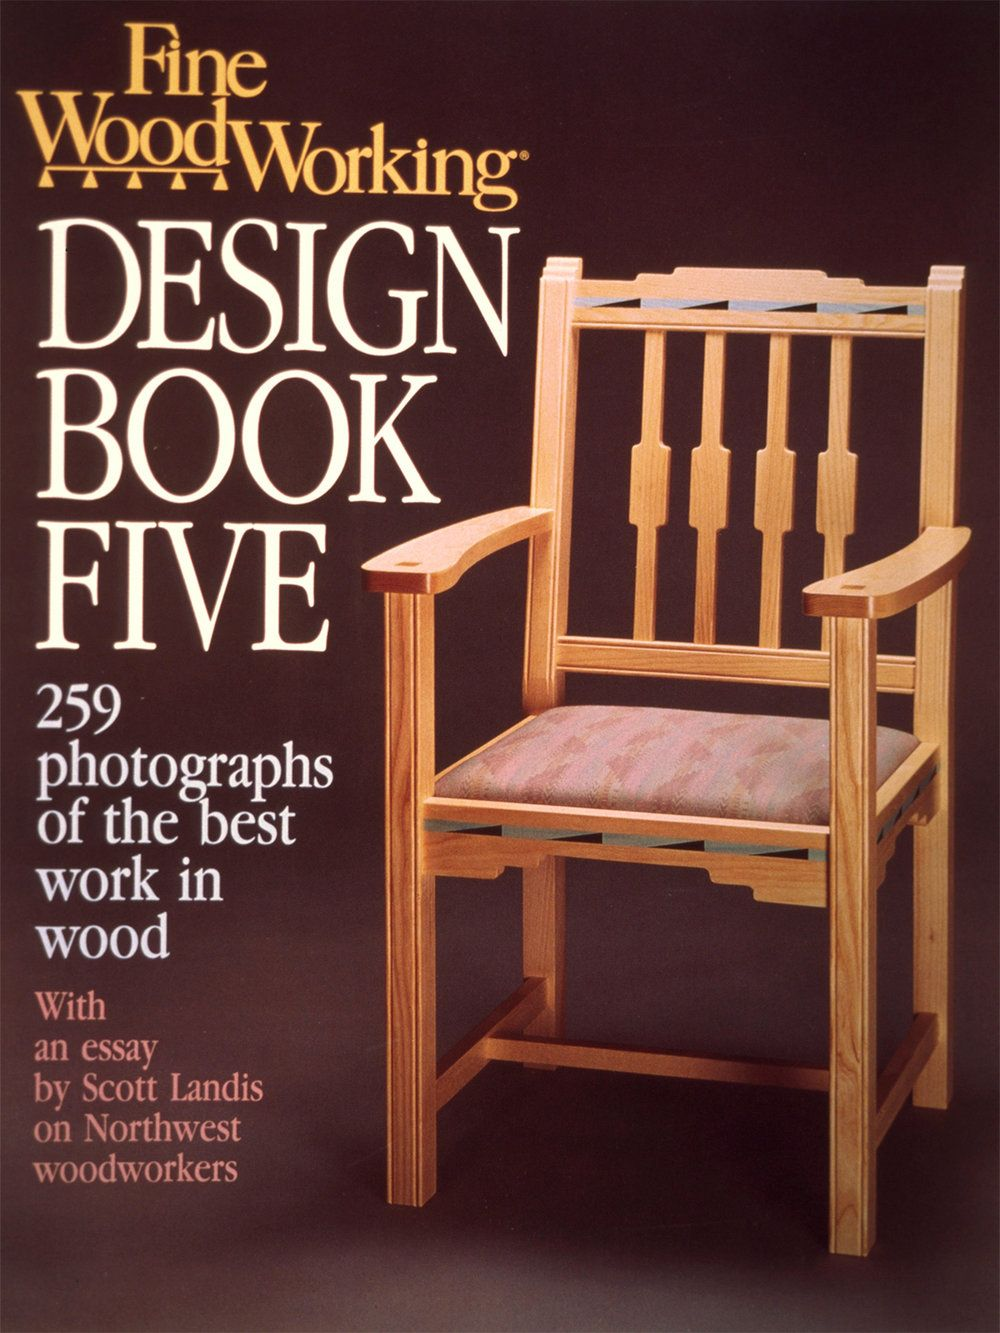 Lost Art Press Page 8 In 2020 Fine Woodworking Woodworking Designs Woodworking